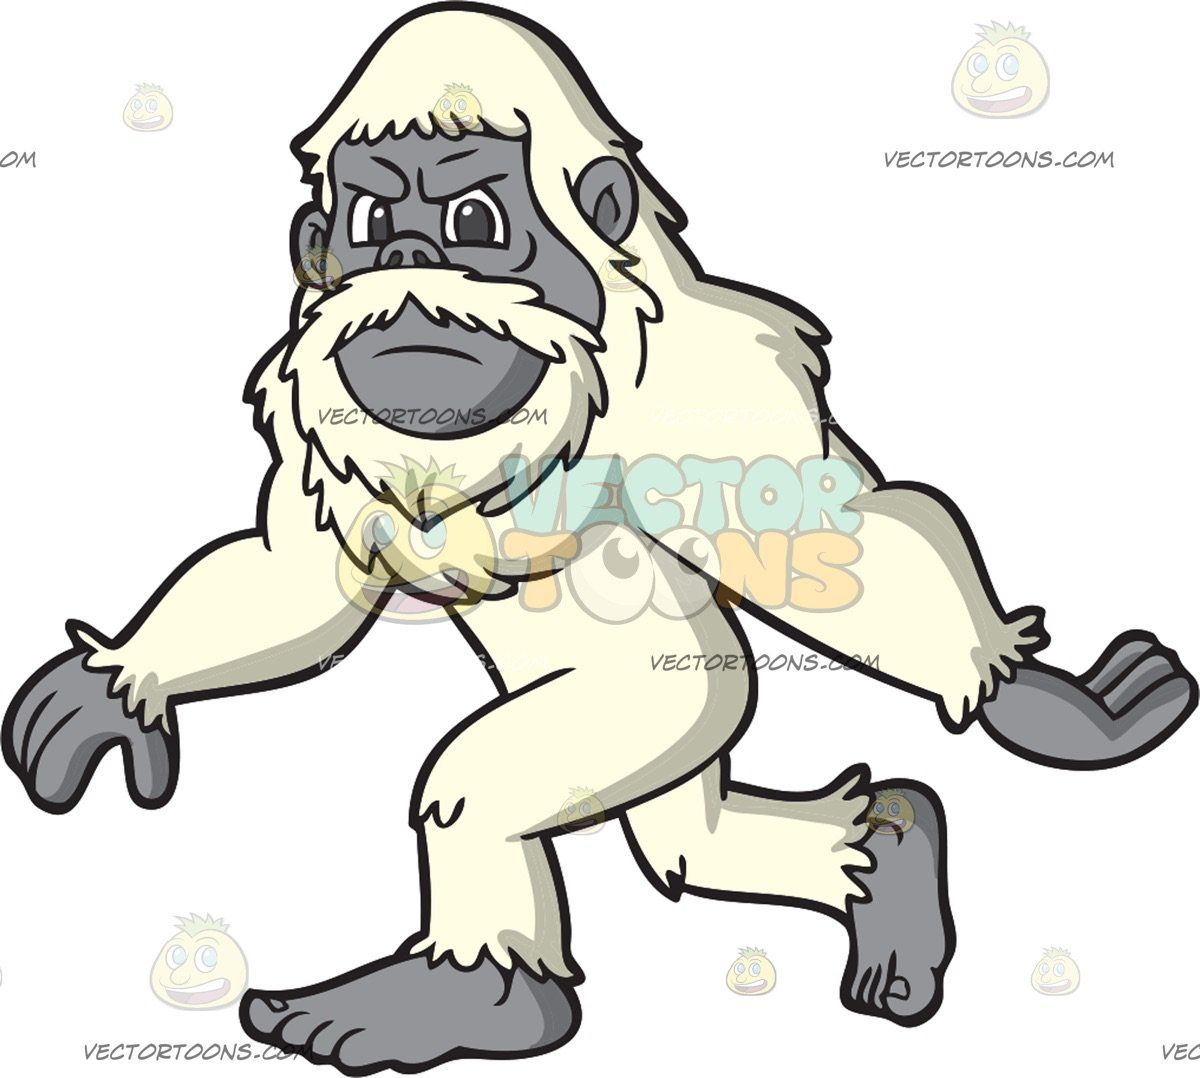 An Angry Yeti: A yeti with an off white fur mustache beard.